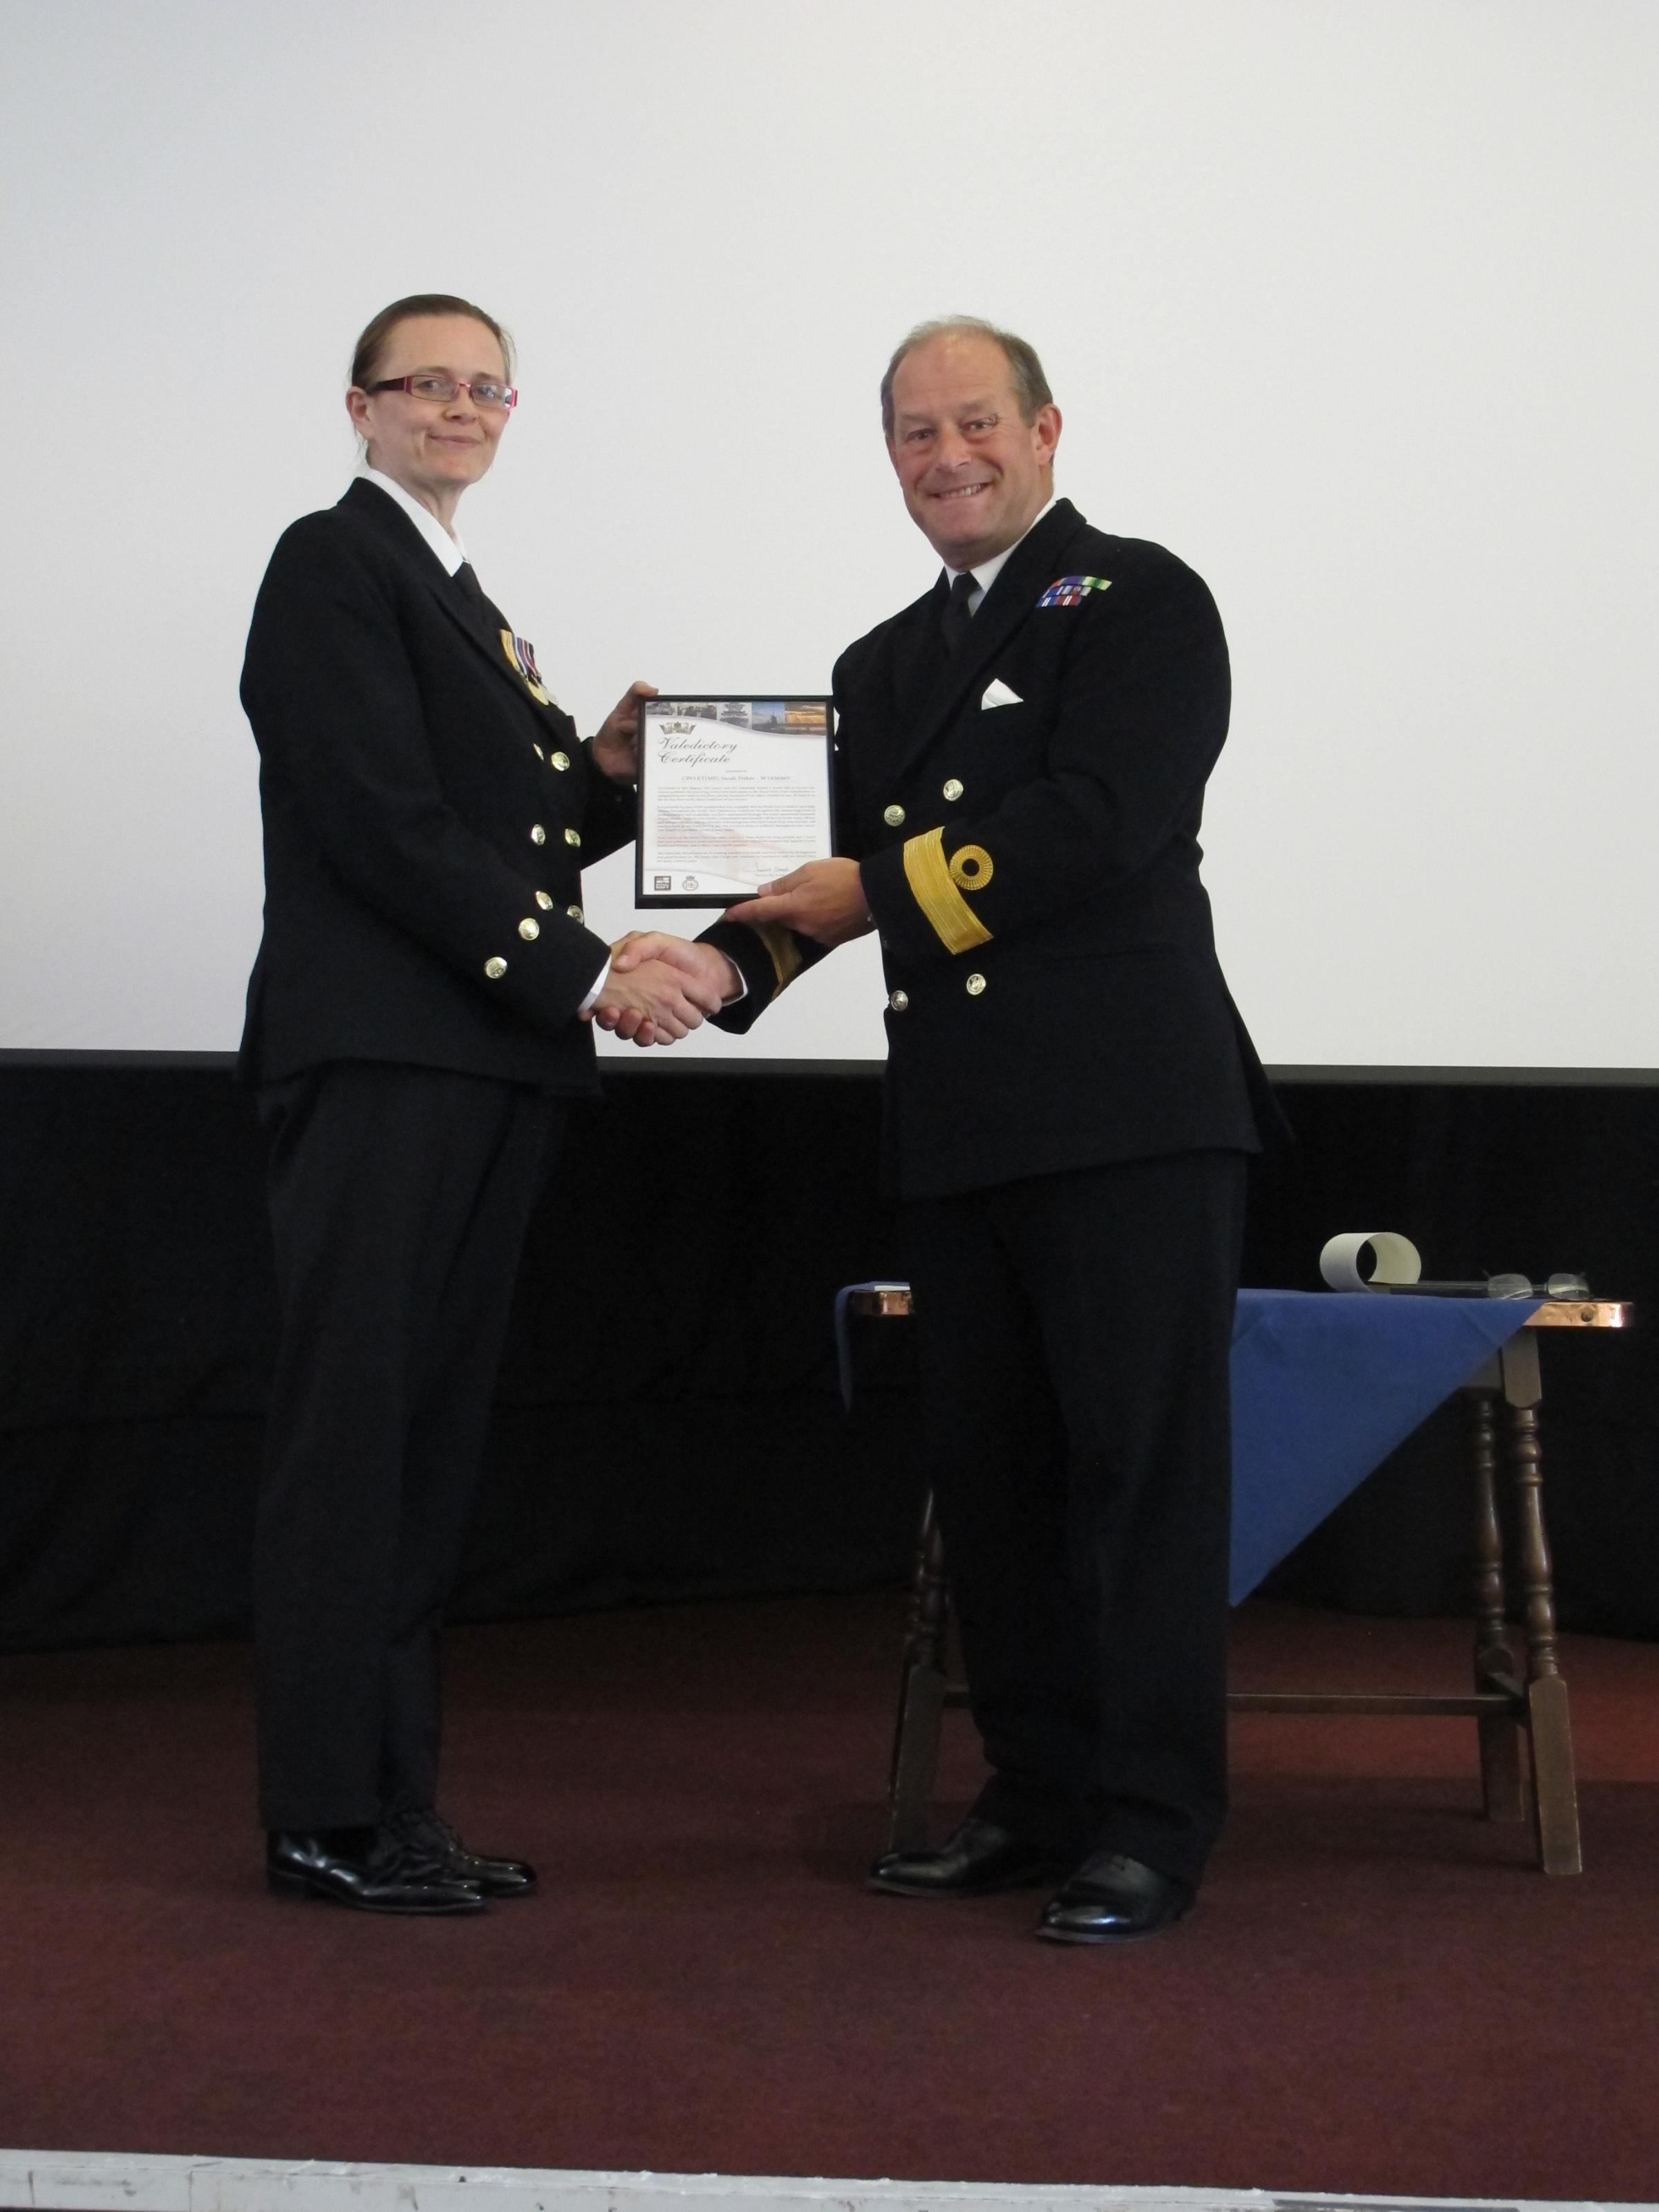 Royal Navy sailor rewarded for career excellence